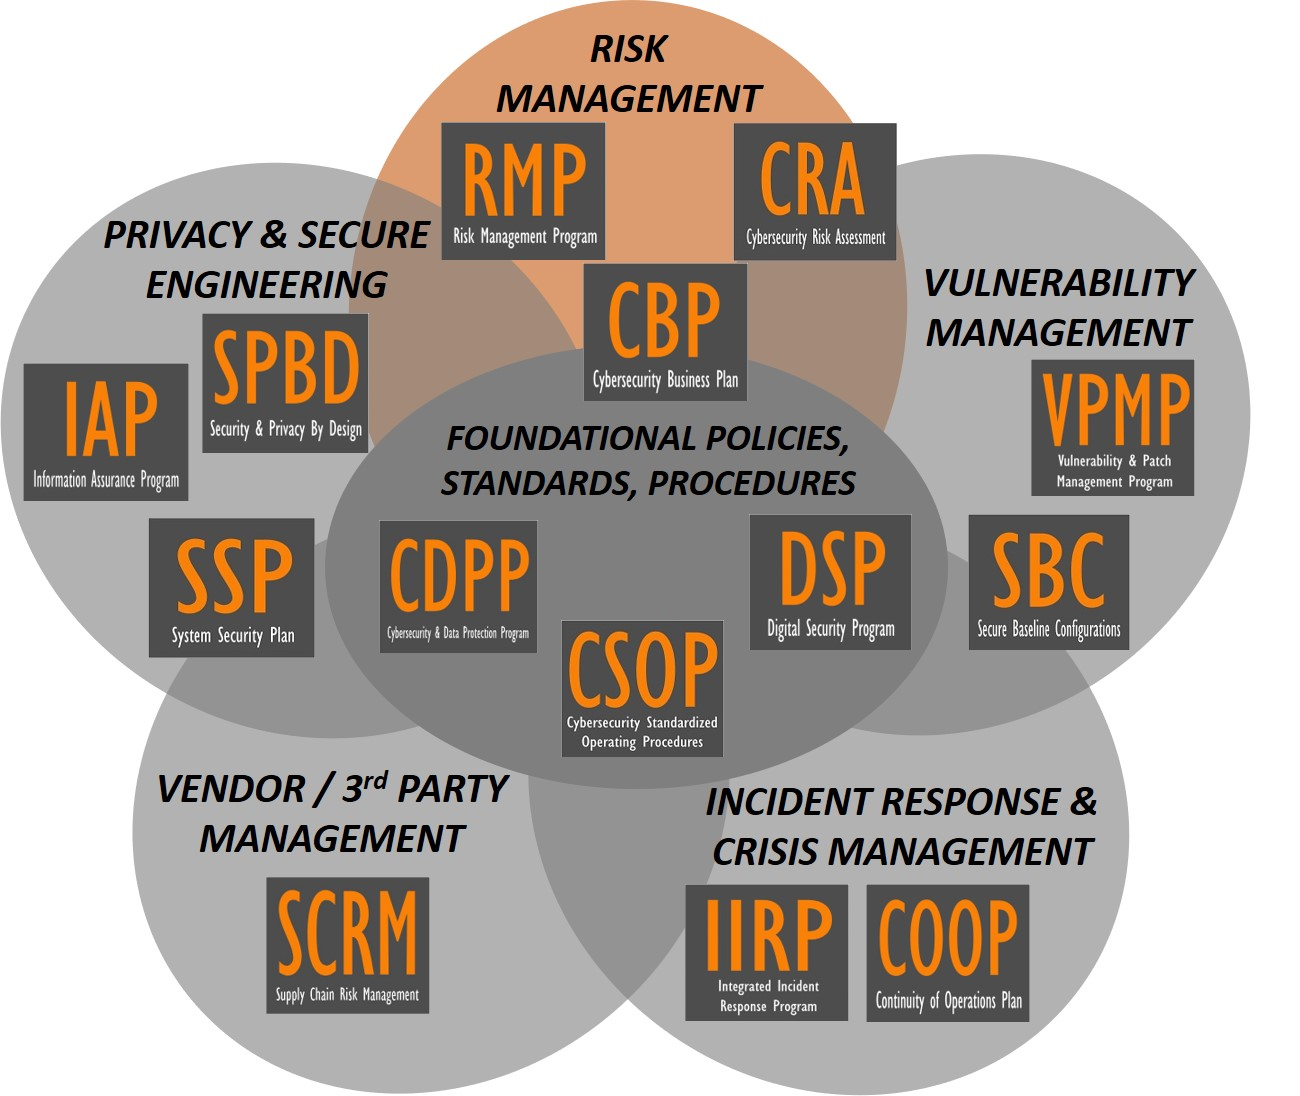 2020.1-complianceforge-products-risk-management.jpg